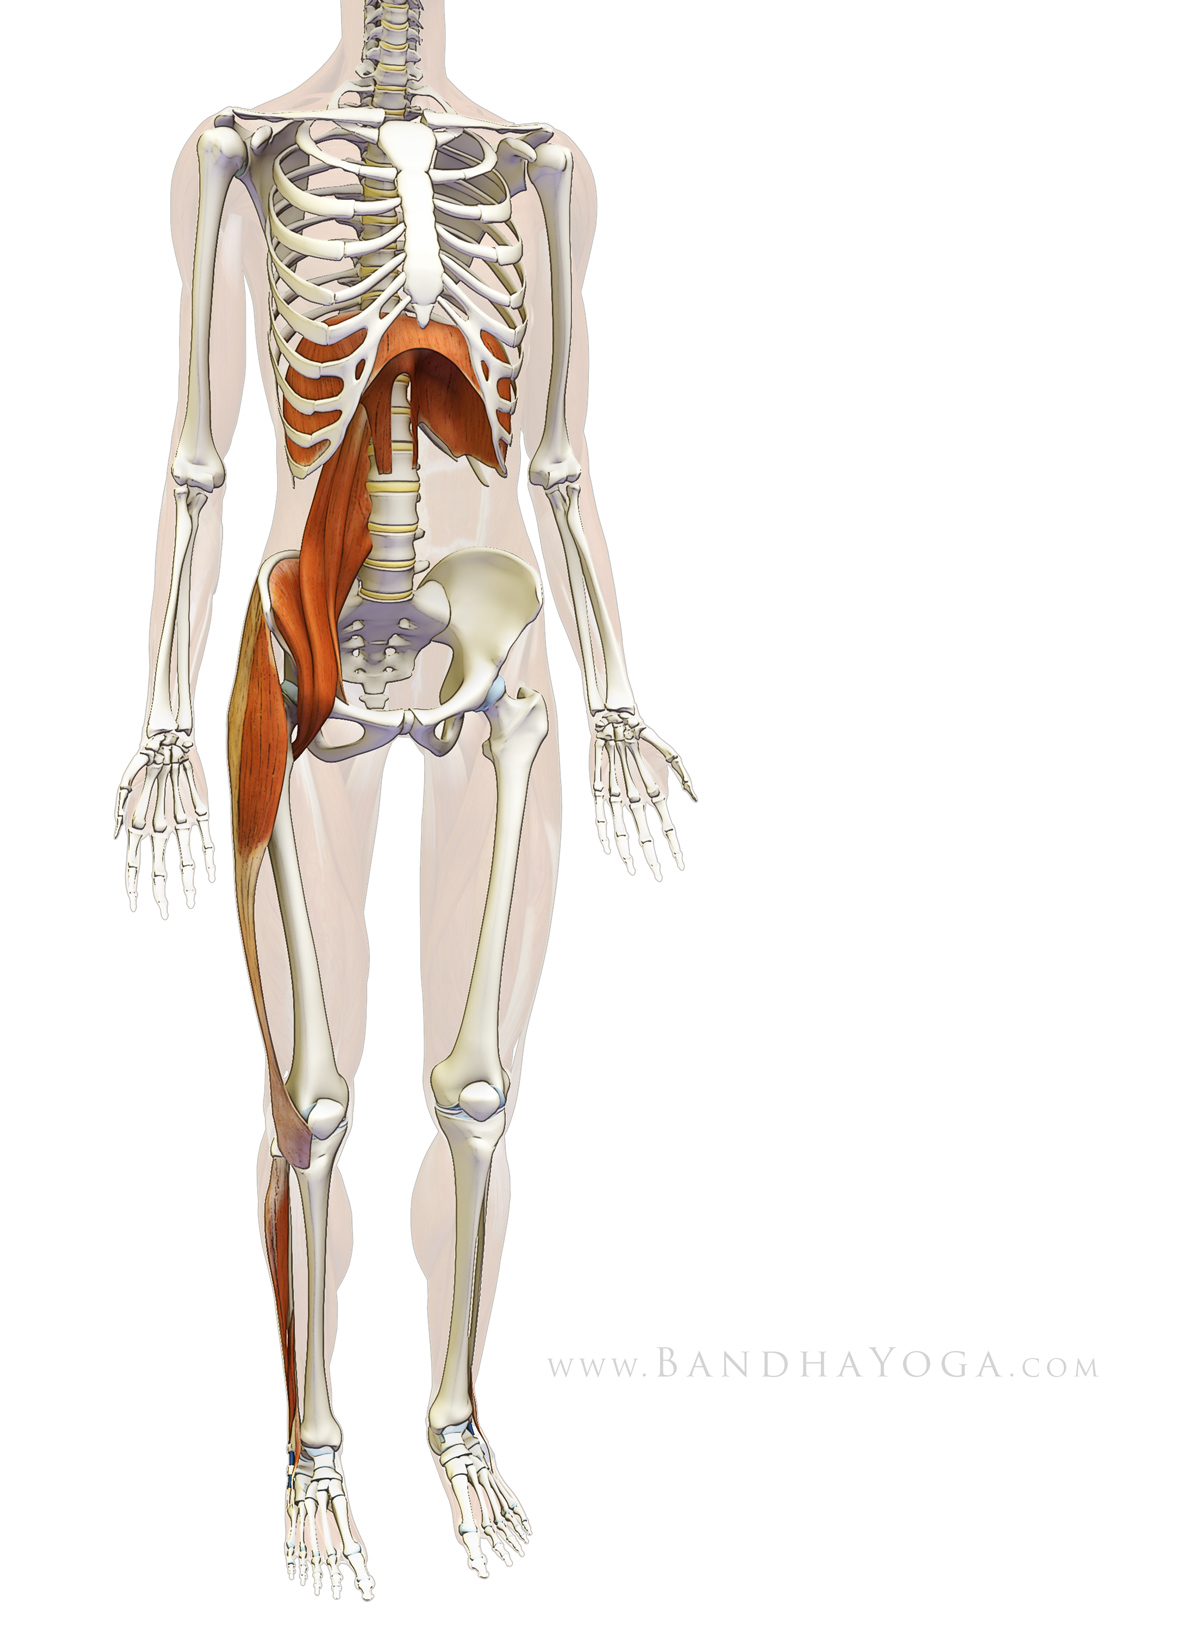 The Daily Bandha Sankalpa Visualization And Yoga The Diaphragm